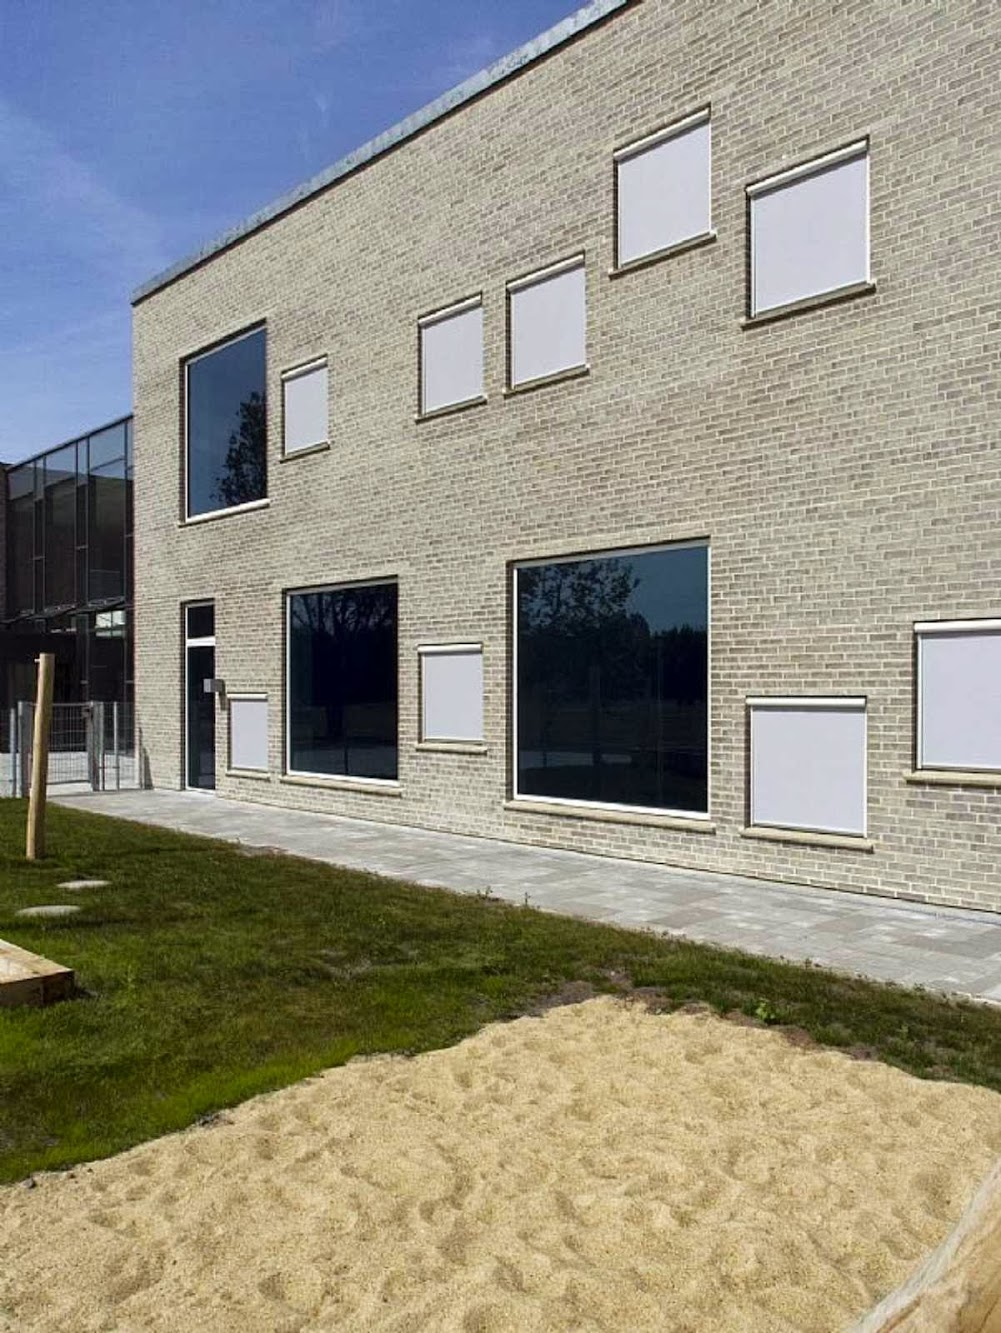 06-International-School-Ikast-Brande-by-C.F.-Møller-Architects